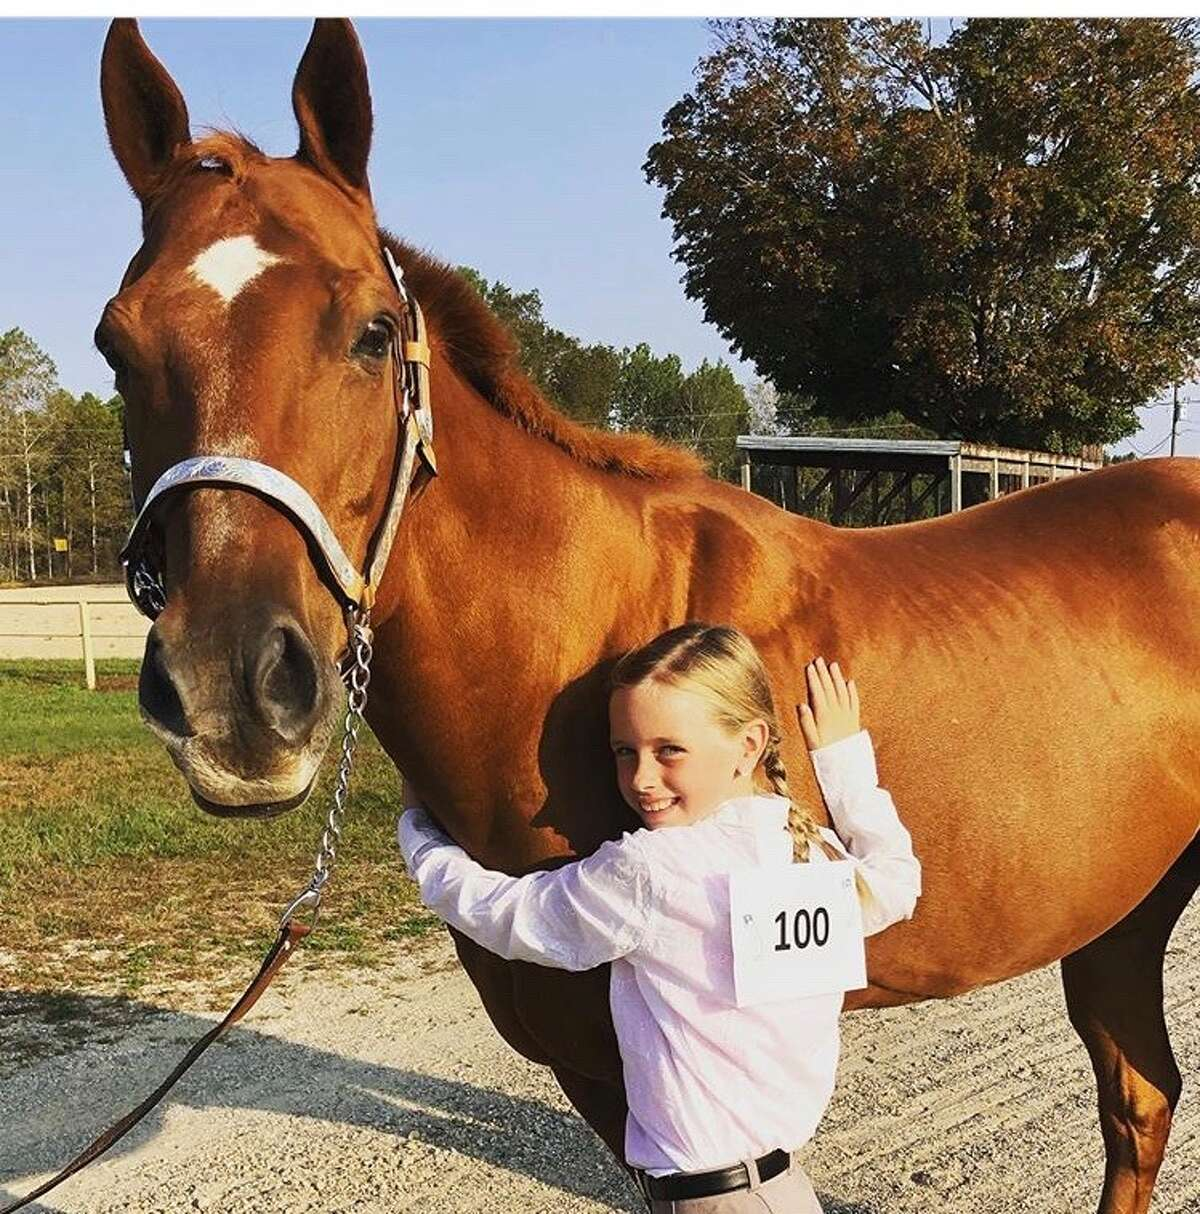 Ellaina Malloy (10) with Oscar. This would have been her first year showing with Barnyard Bunch.